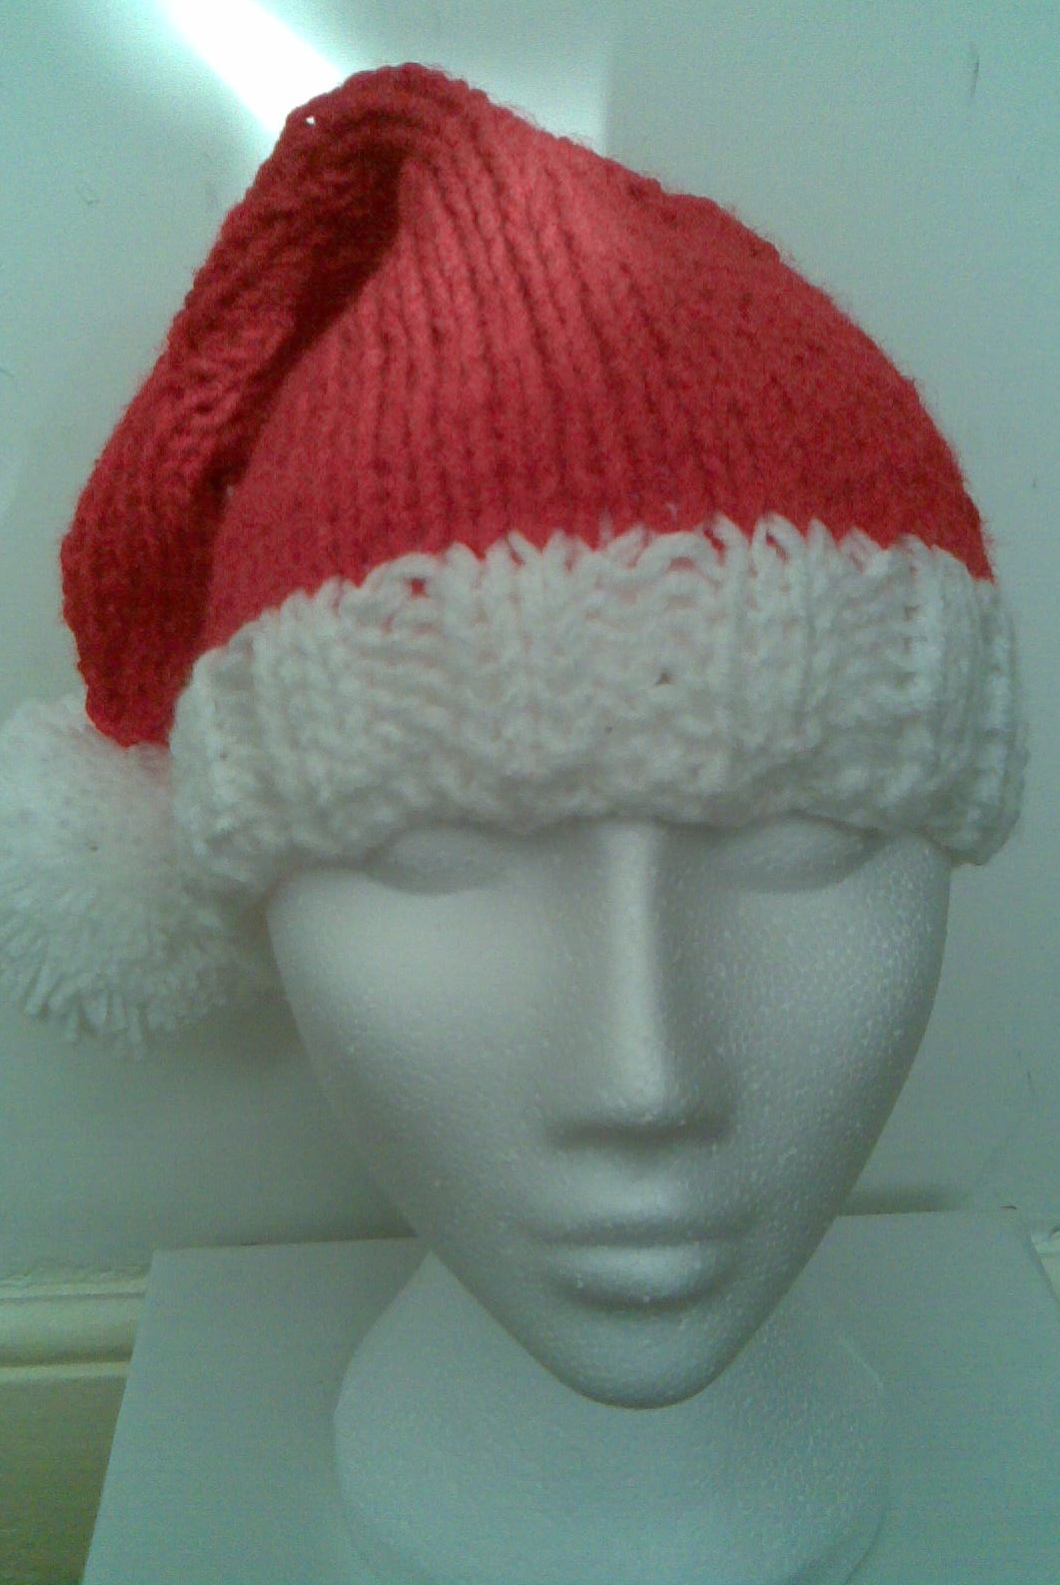 Knitting Pattern Christmas Hat : Musings of a knit-a-holic from Wales: Knitting Pattern: Santa hat